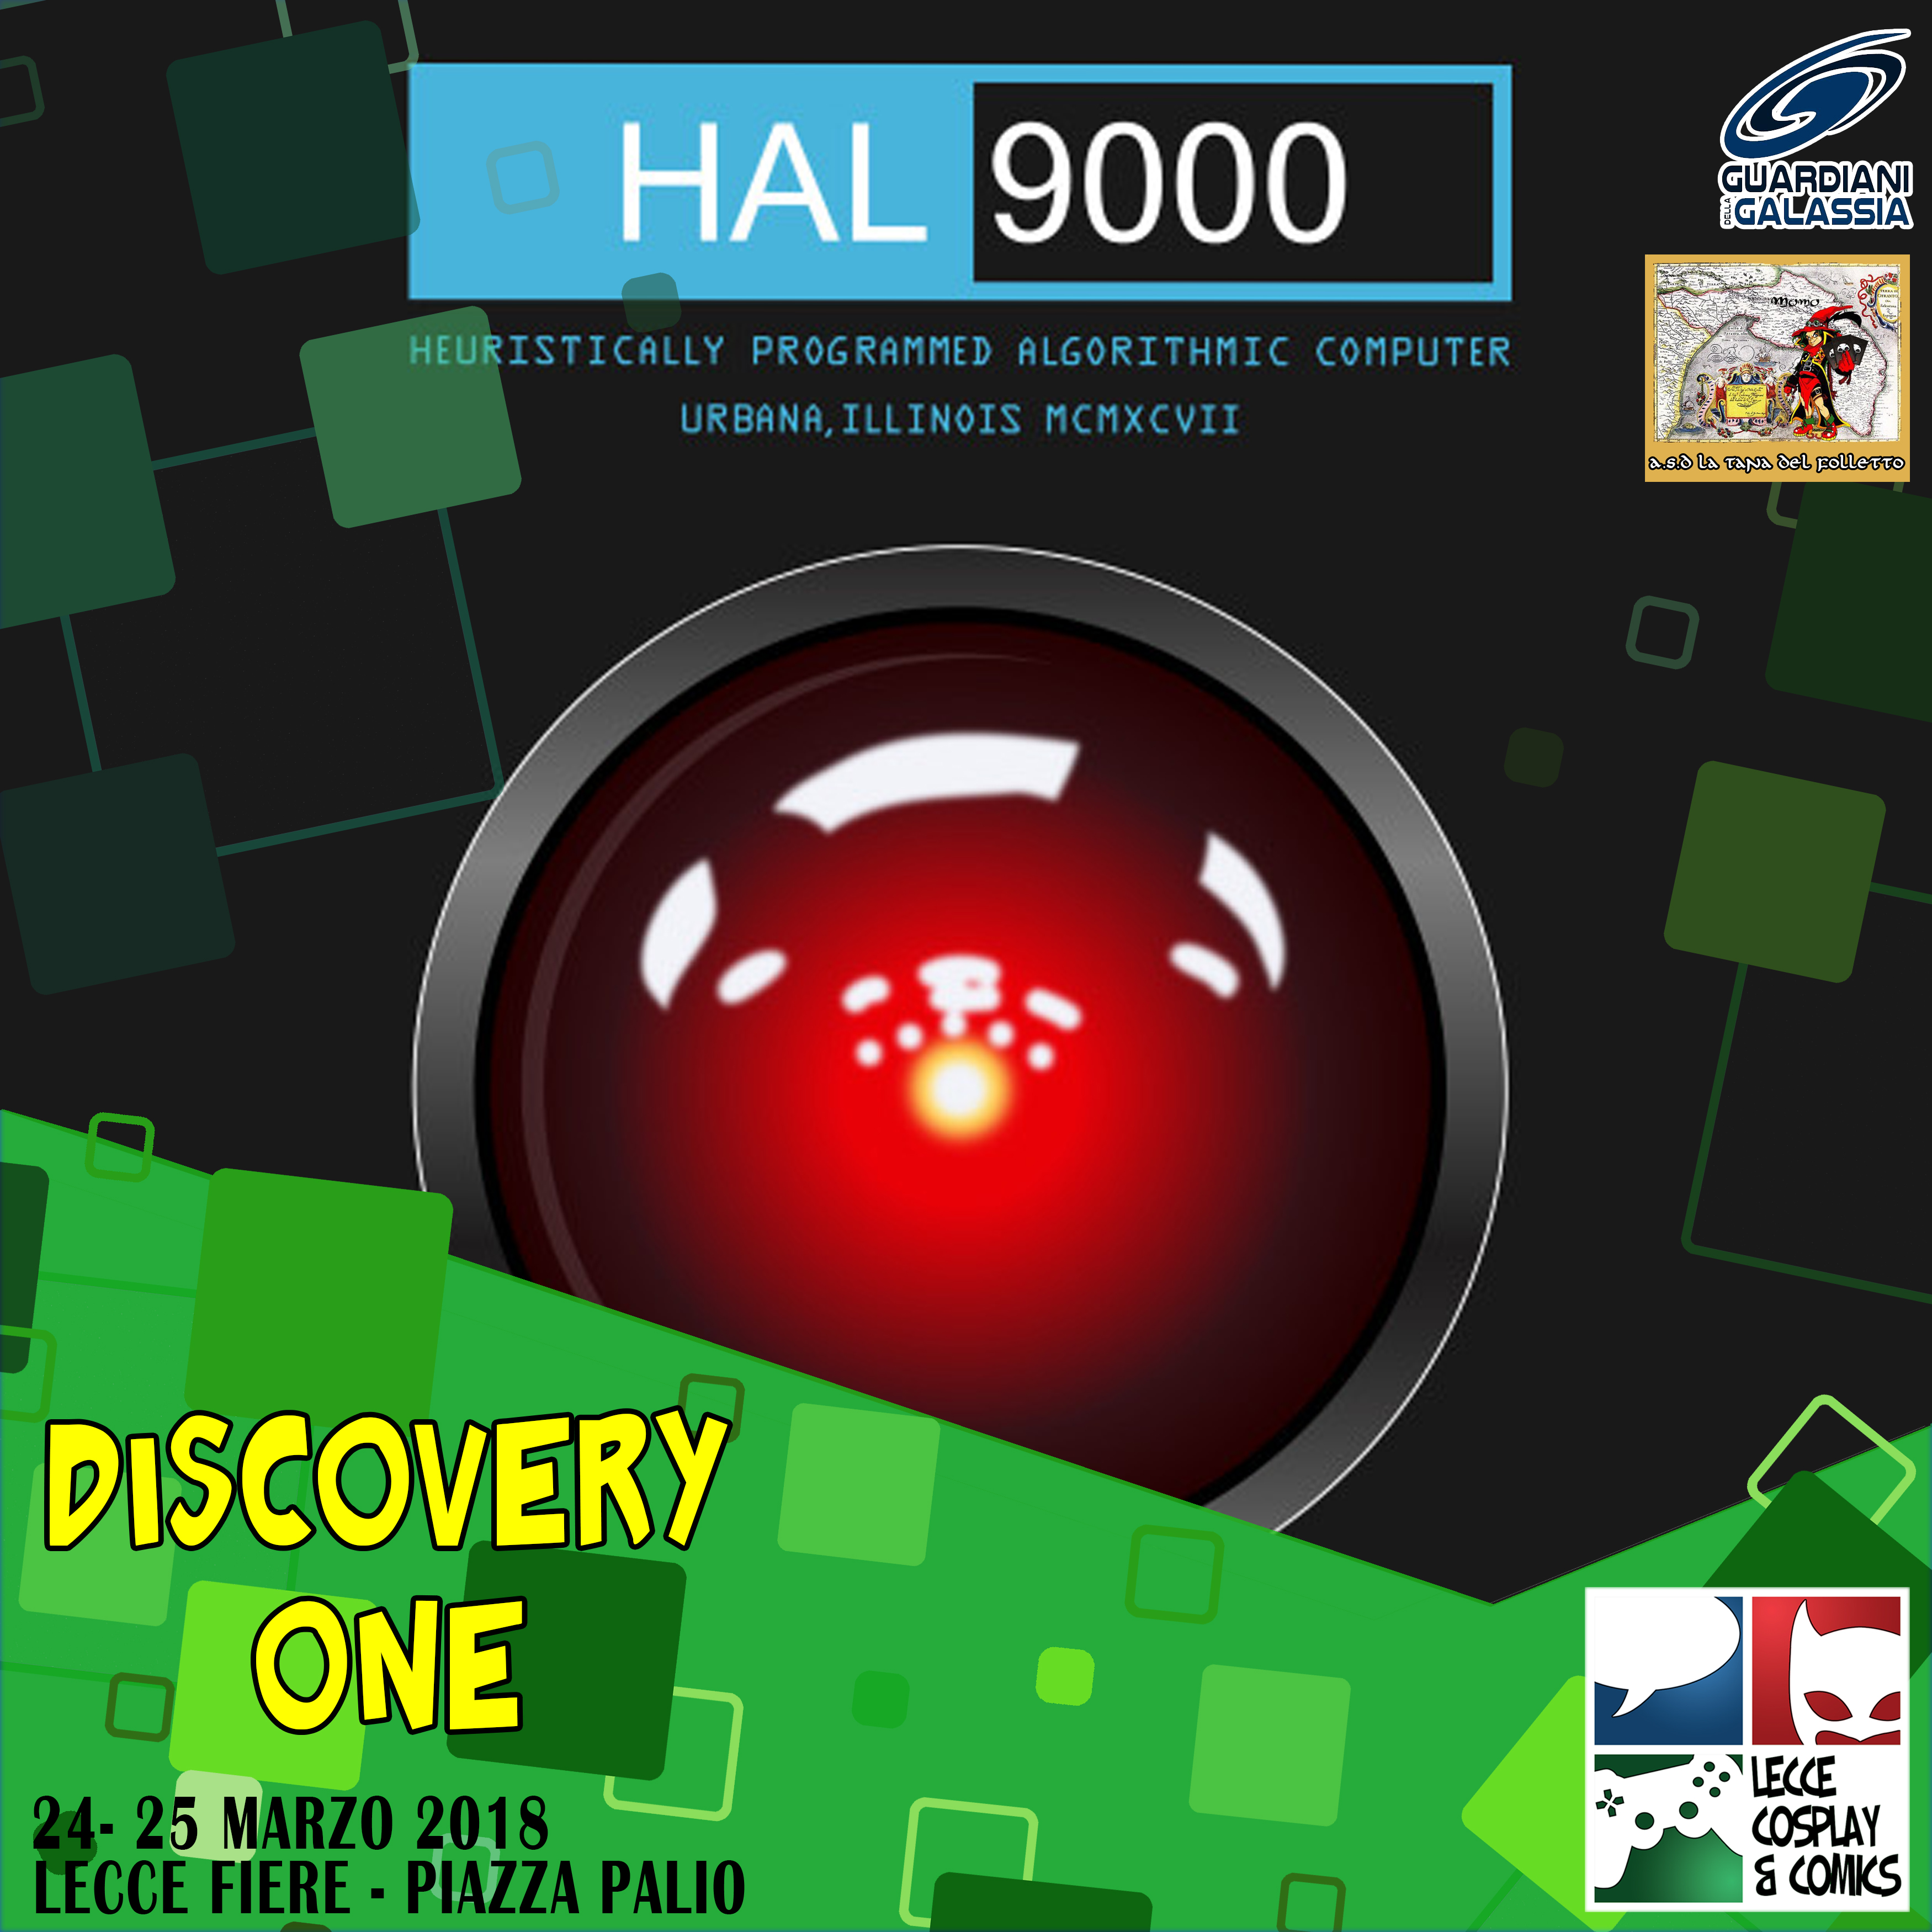 DIscovery One: Hall 9000